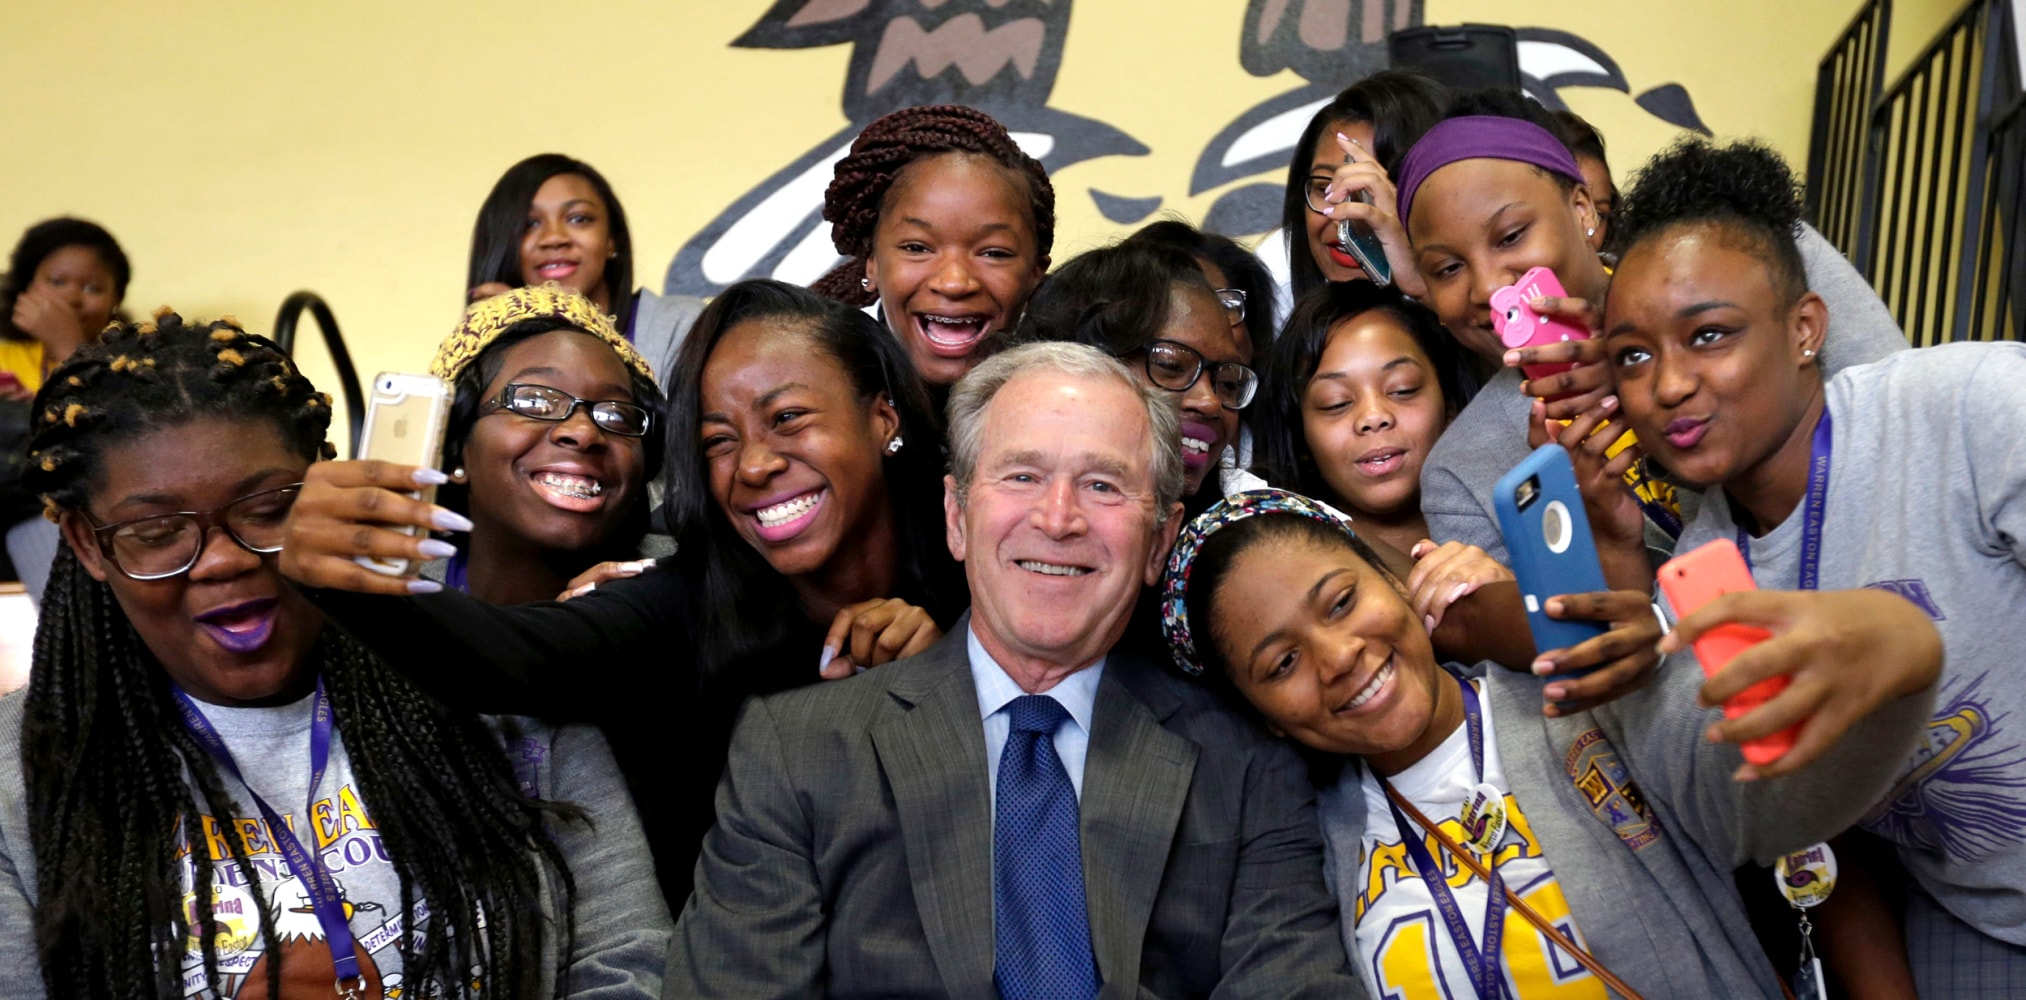 a look into president bush presidency Rick in la may gw bush never forget his legacy as the worst remembered president in us history, who ruined the lives of so many good citizens.